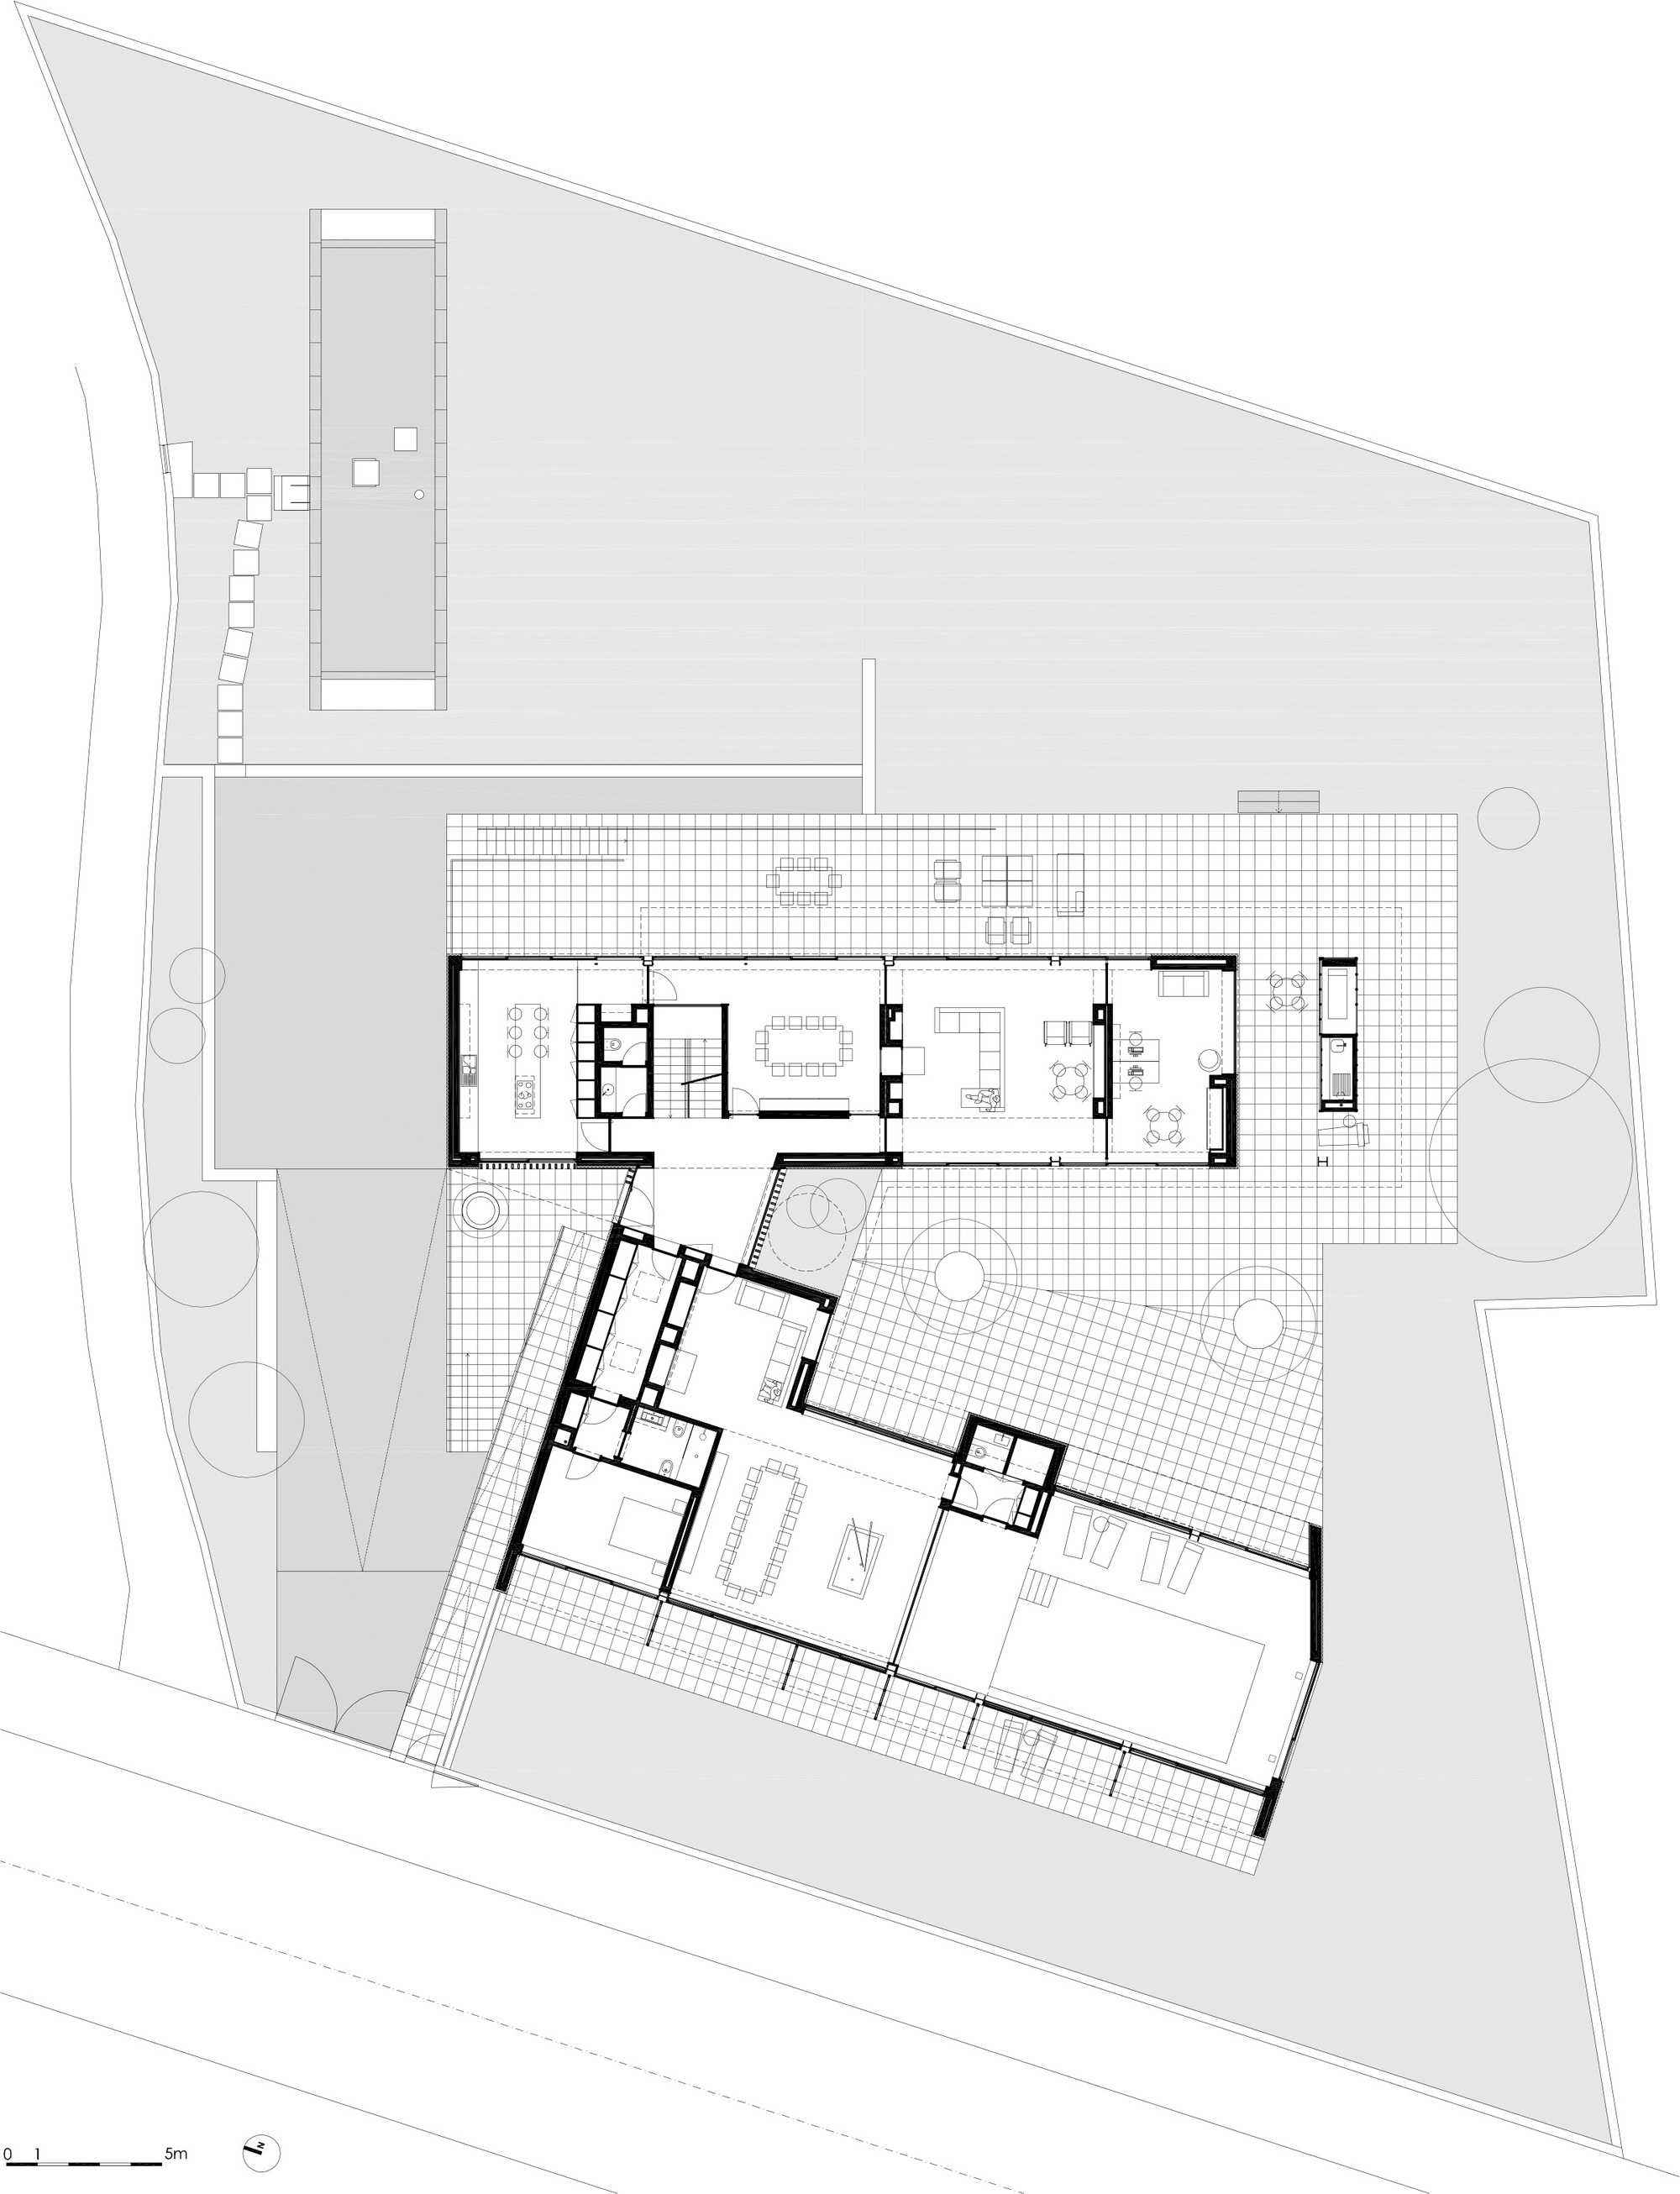 Gallery of p l house atelier d 39 arquitectura j a lopes - Atelier arquitectura ...